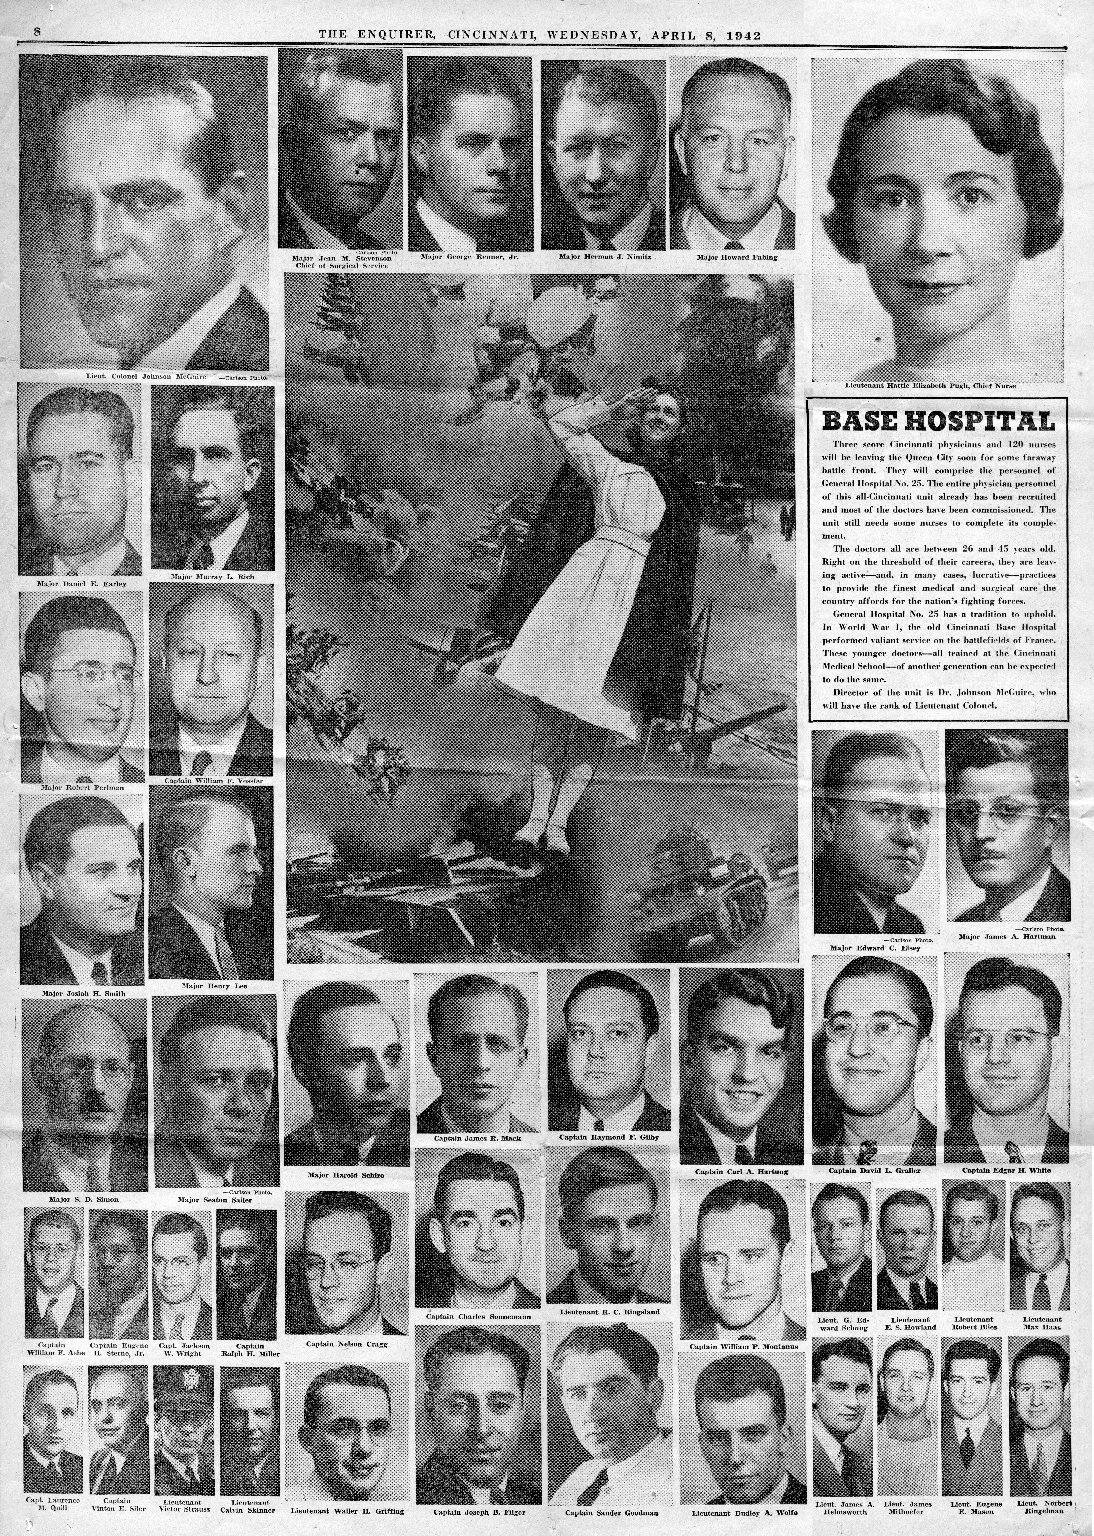 Base Hospital (Cincinnati Enquirer, April 8, 1942)